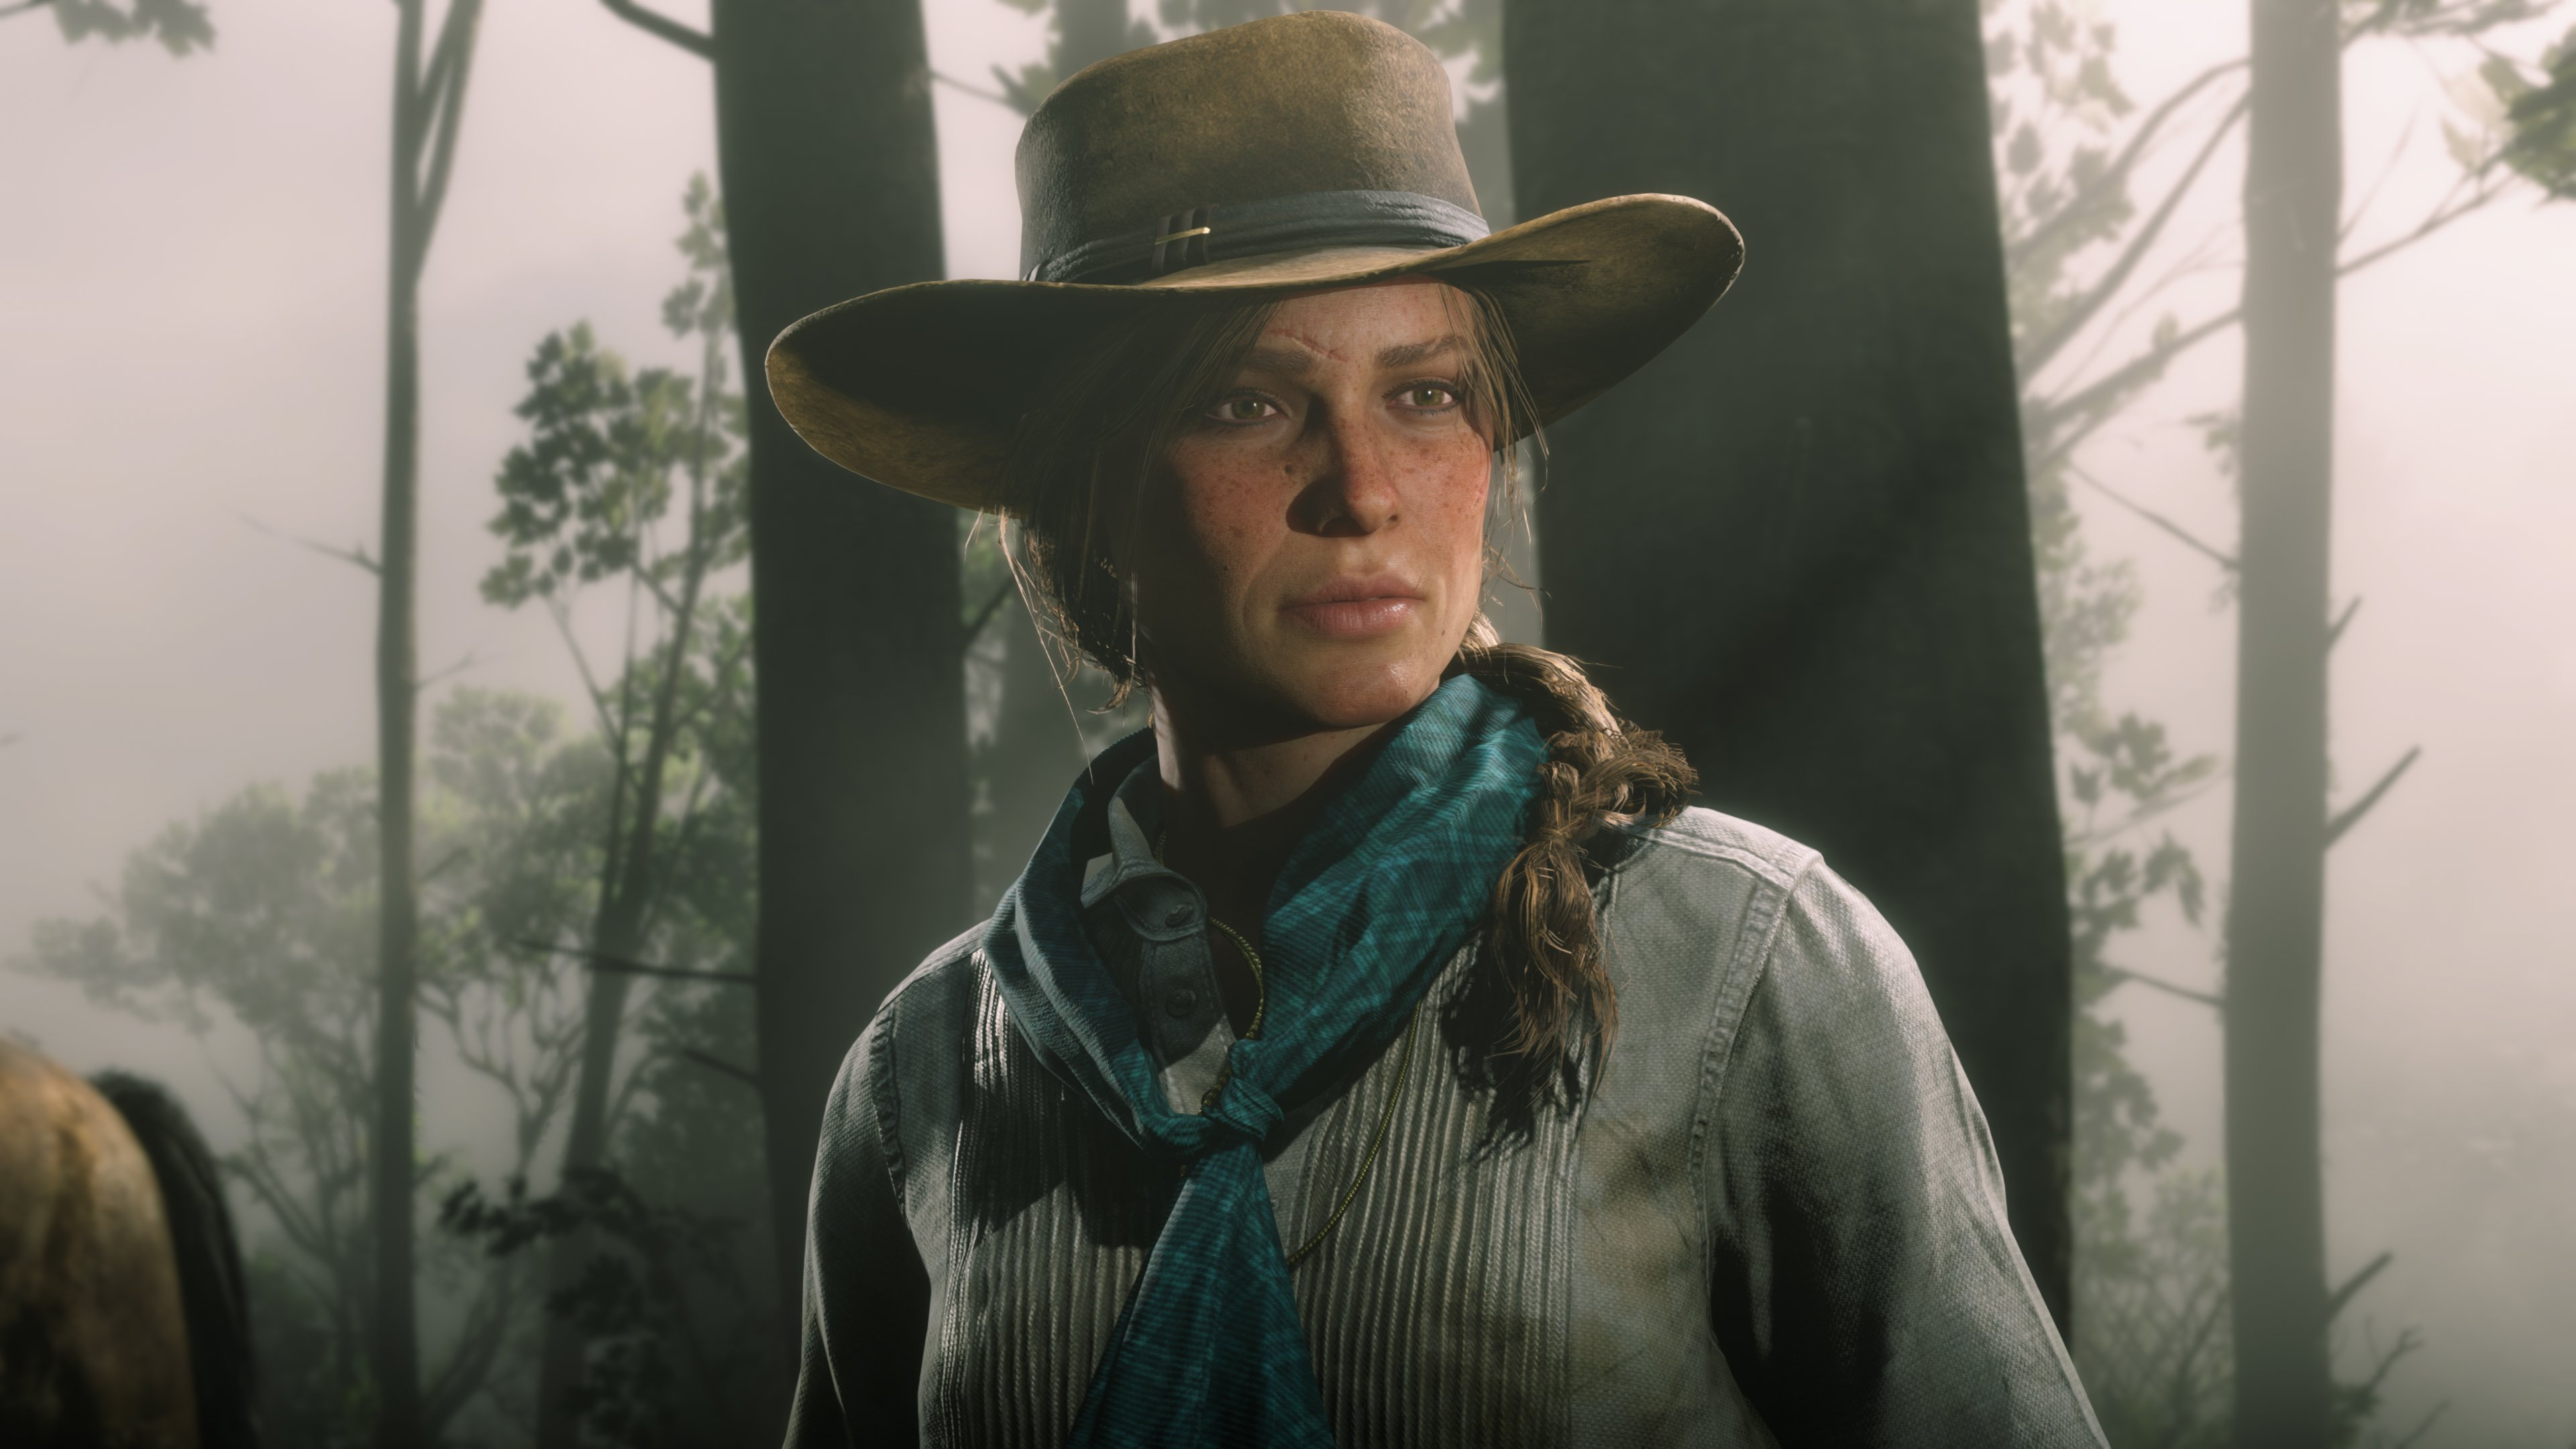 Red Dead Redemption 2 PC Specs, Screenshots & More Revealed